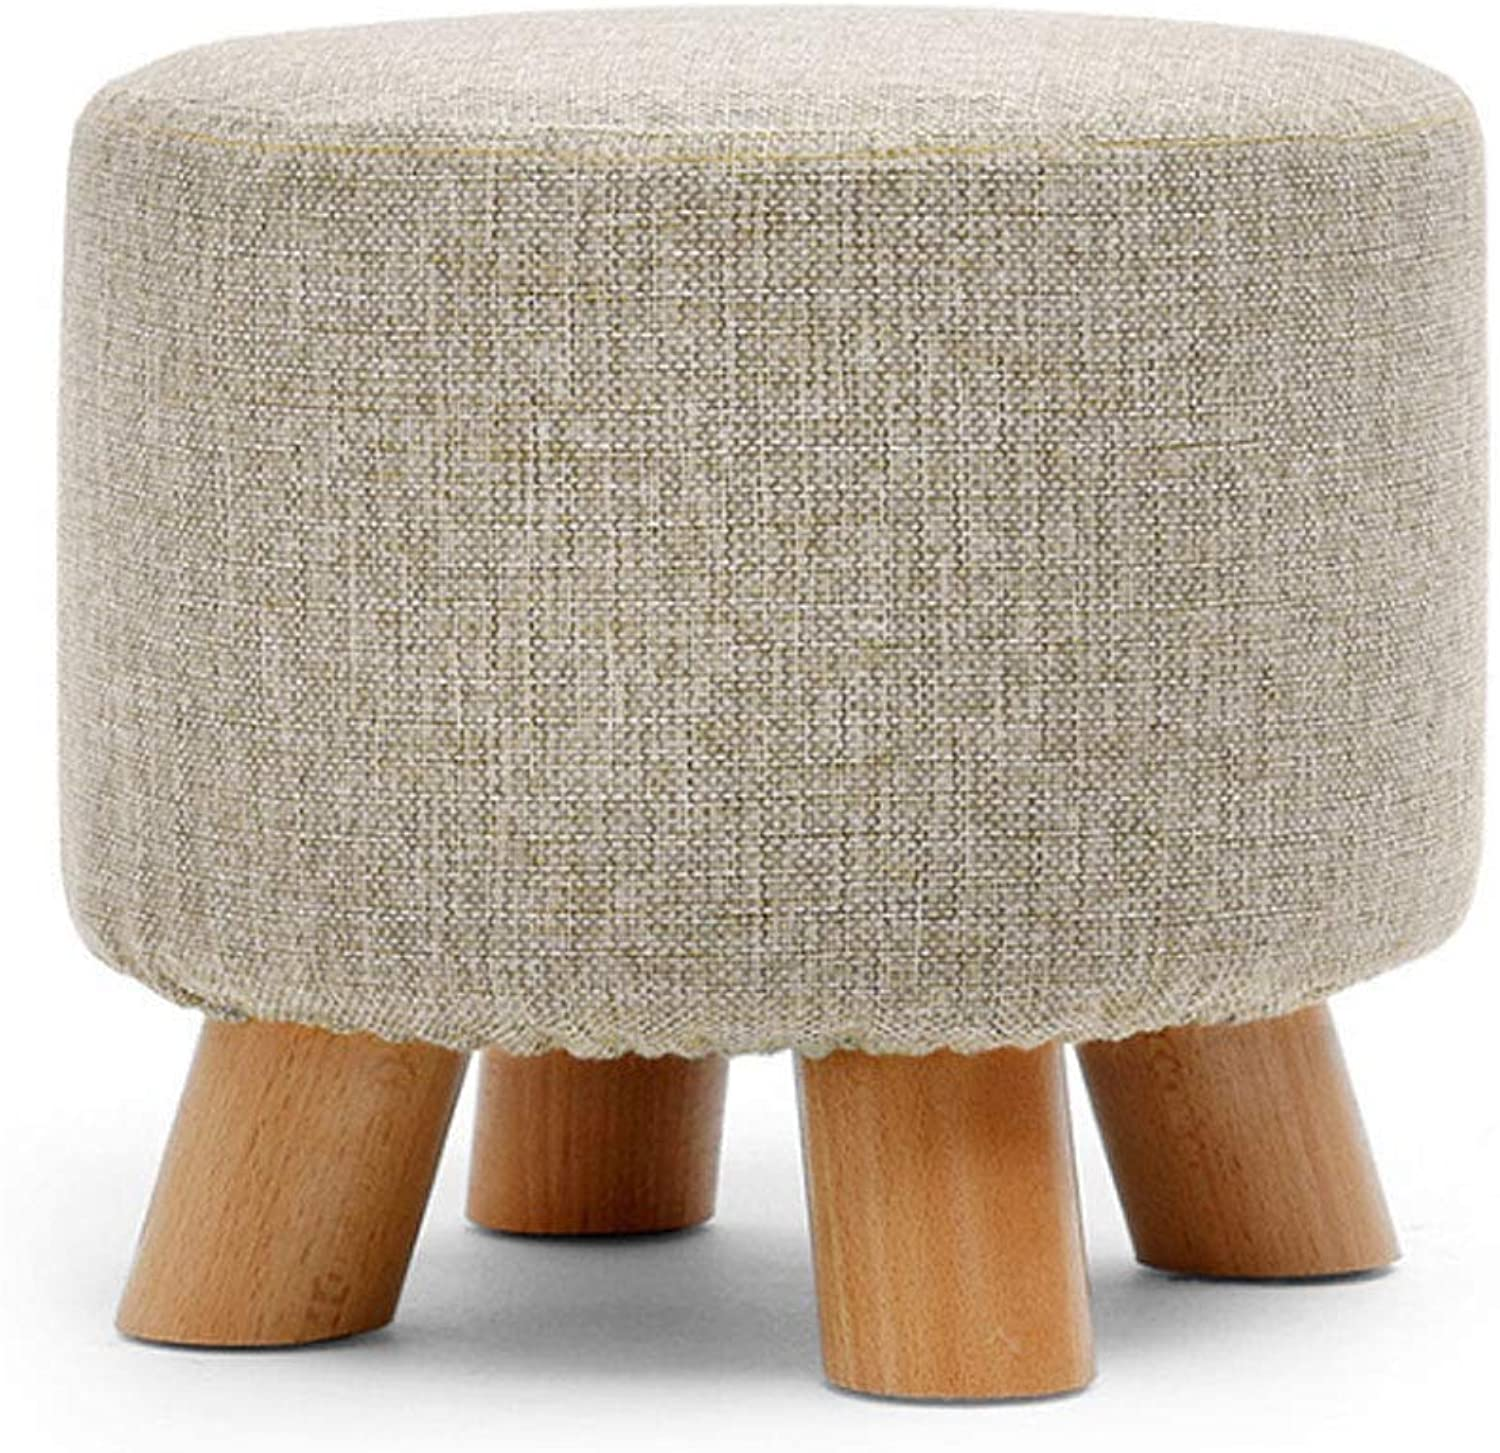 Footstool shoes Bench, Low Stool,Solid Wood,Small Stool,Sofa Stool,Stool, Creative,Foot Stool (Design   G)